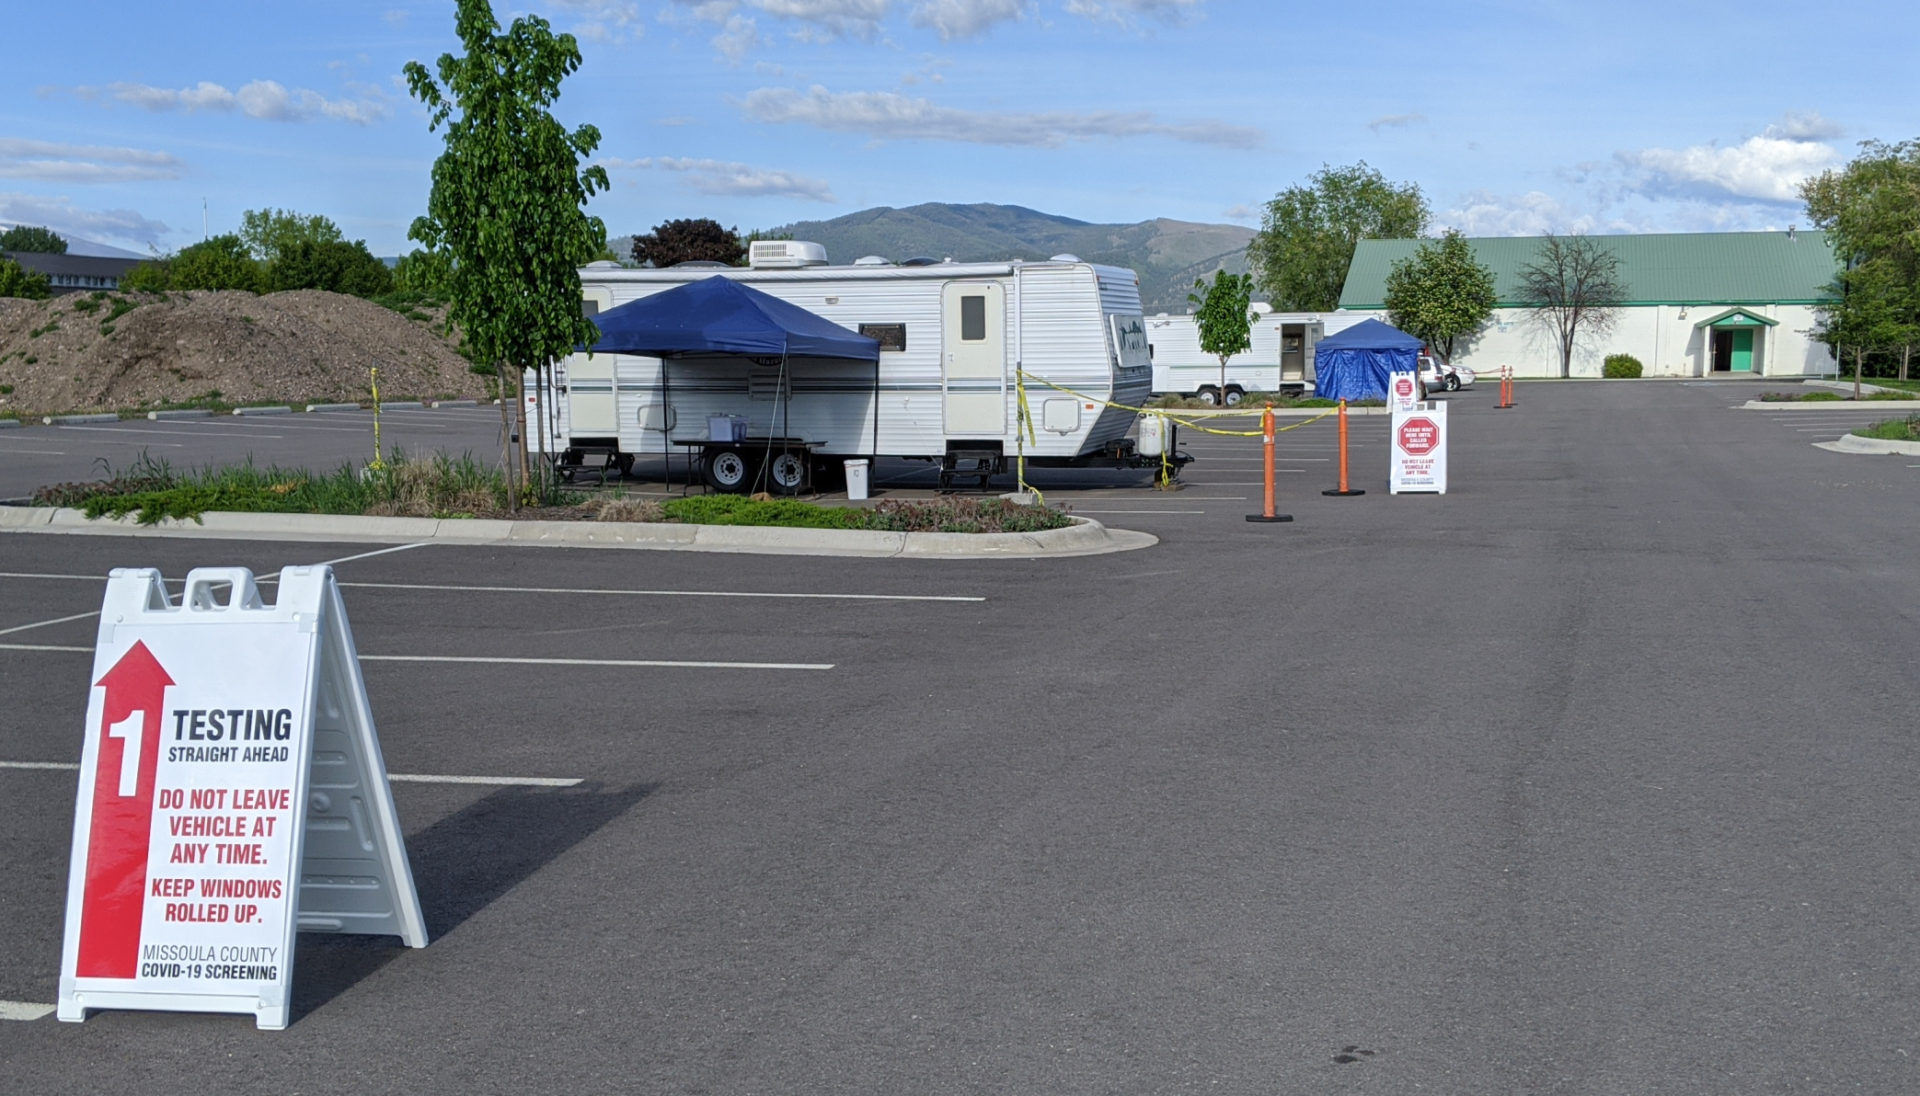 Photo of the COVID-19 Testing Site.  Two stations consisting of a camper trailer and a popup canopy where cars drive up to get tested.